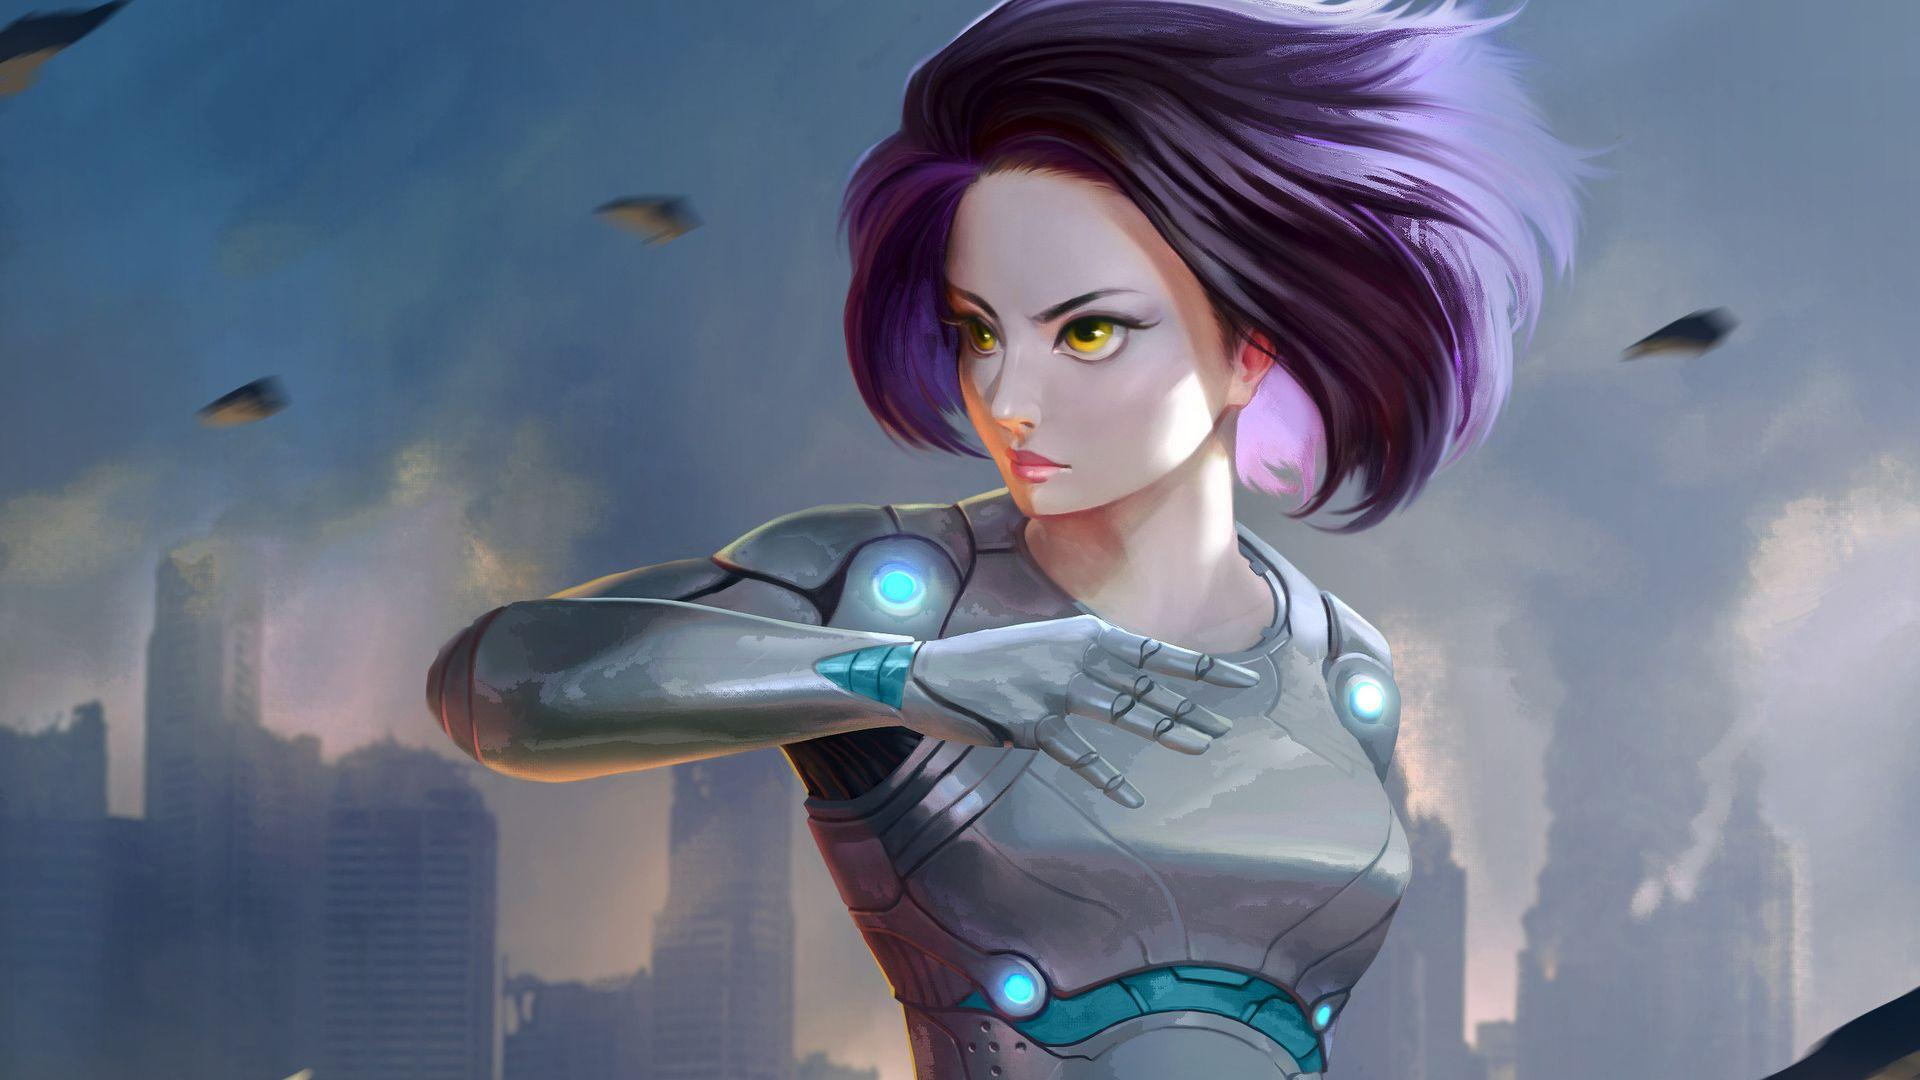 Alita Battle Angel 2018 Art, HD Movies, 4k Wallpapers, Image